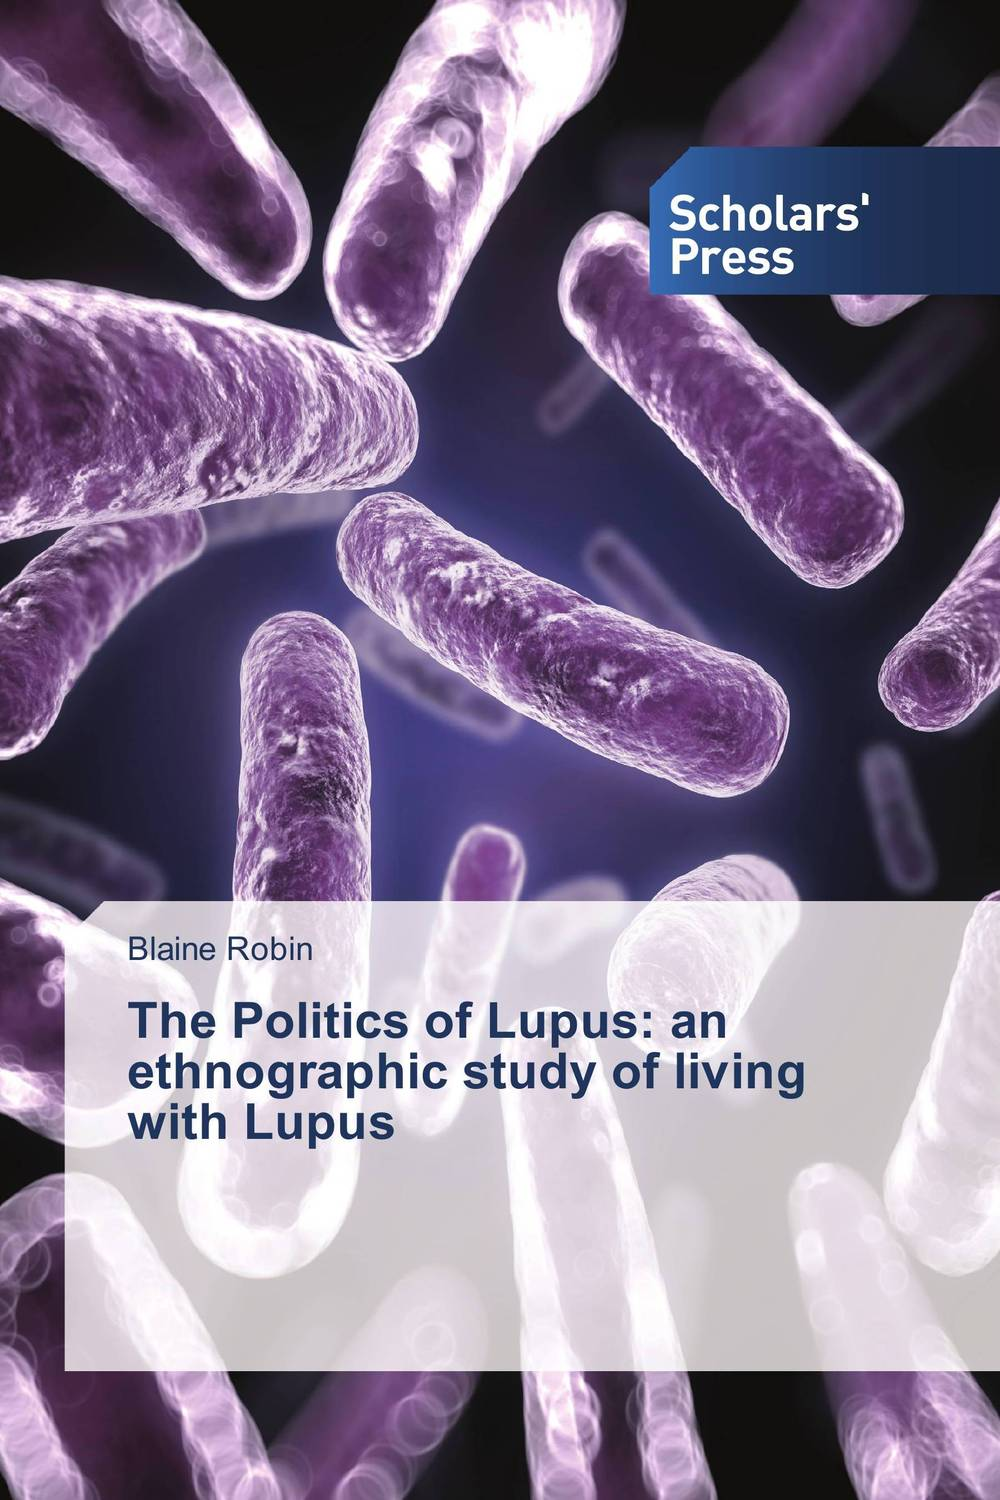 The Politics of Lupus: an ethnographic study of living with Lupus ethnographic study of traditional pottery making artisan women